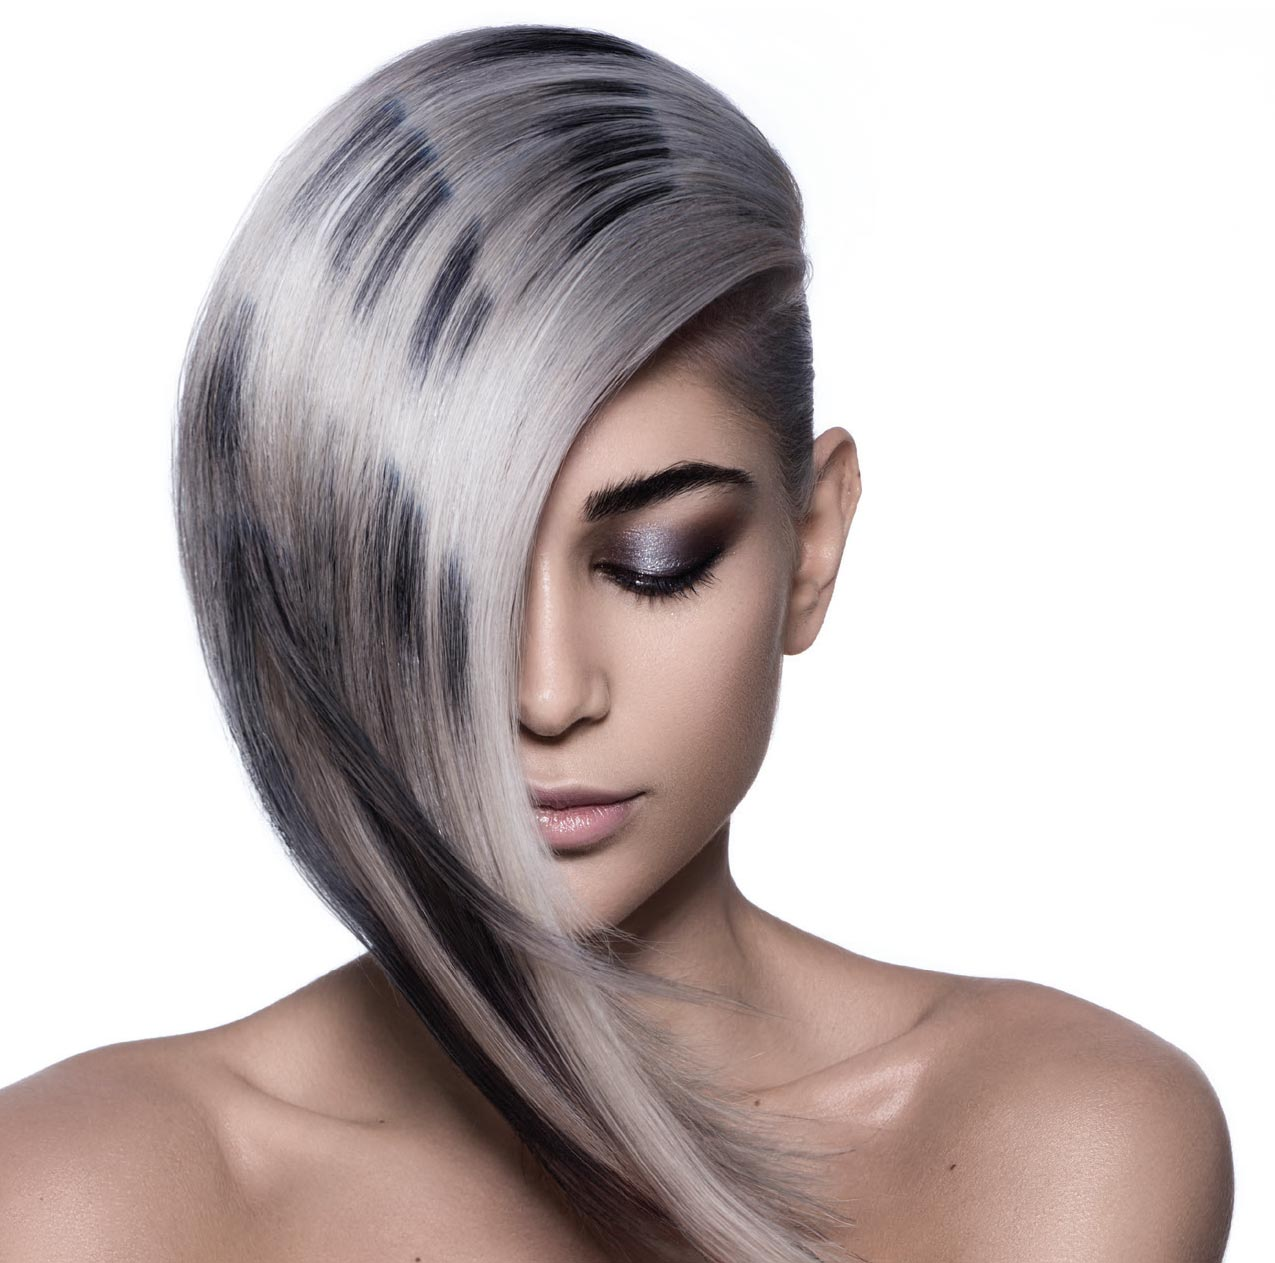 HOW-TO: Smoked Silver Hair Color With Depth and Darkness